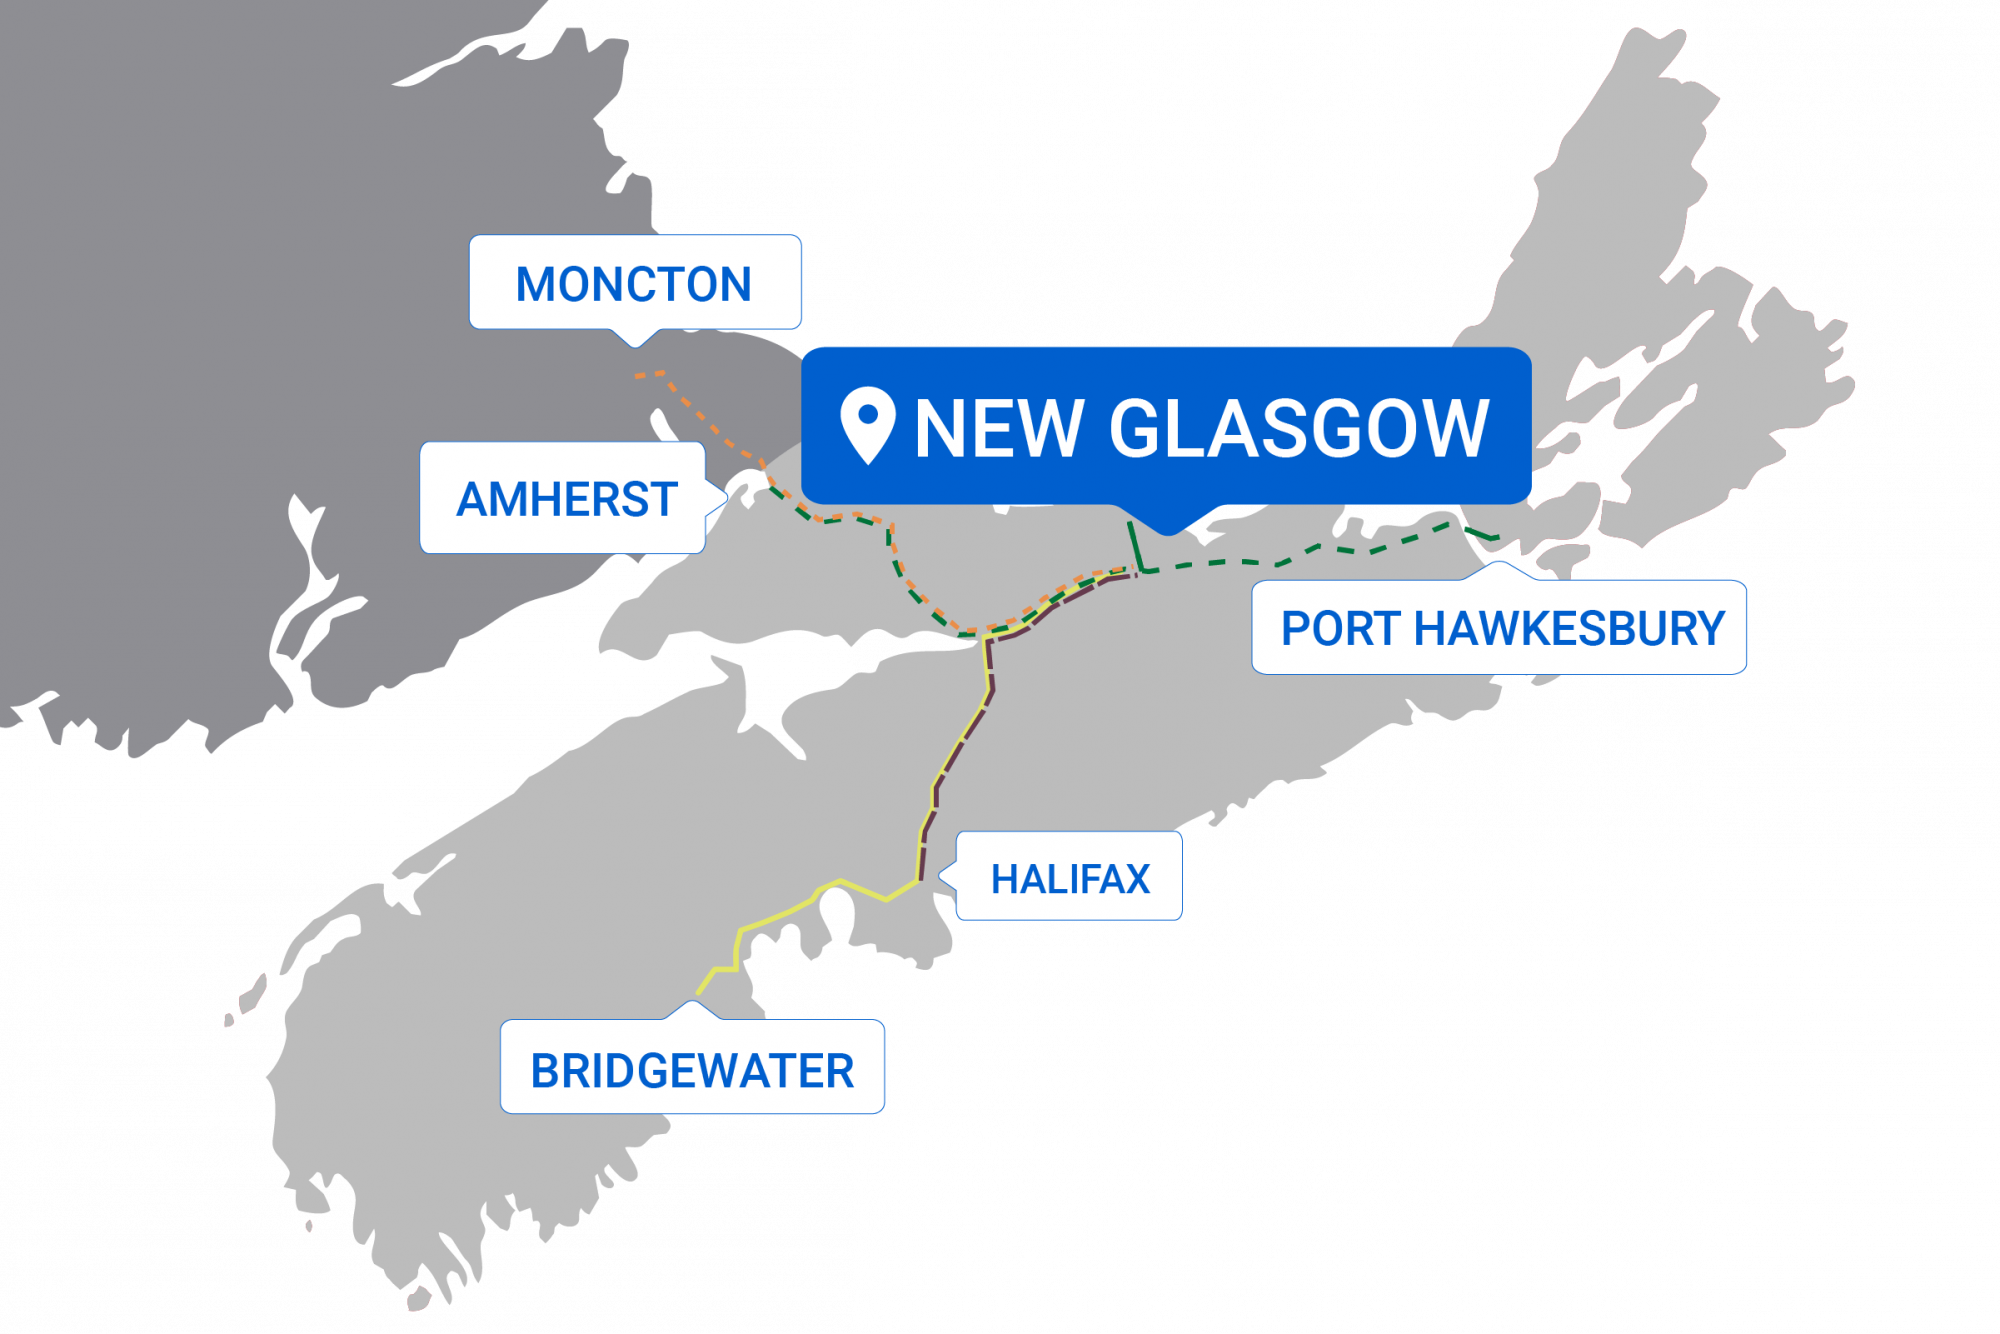 Map of destinations from New Glasgow